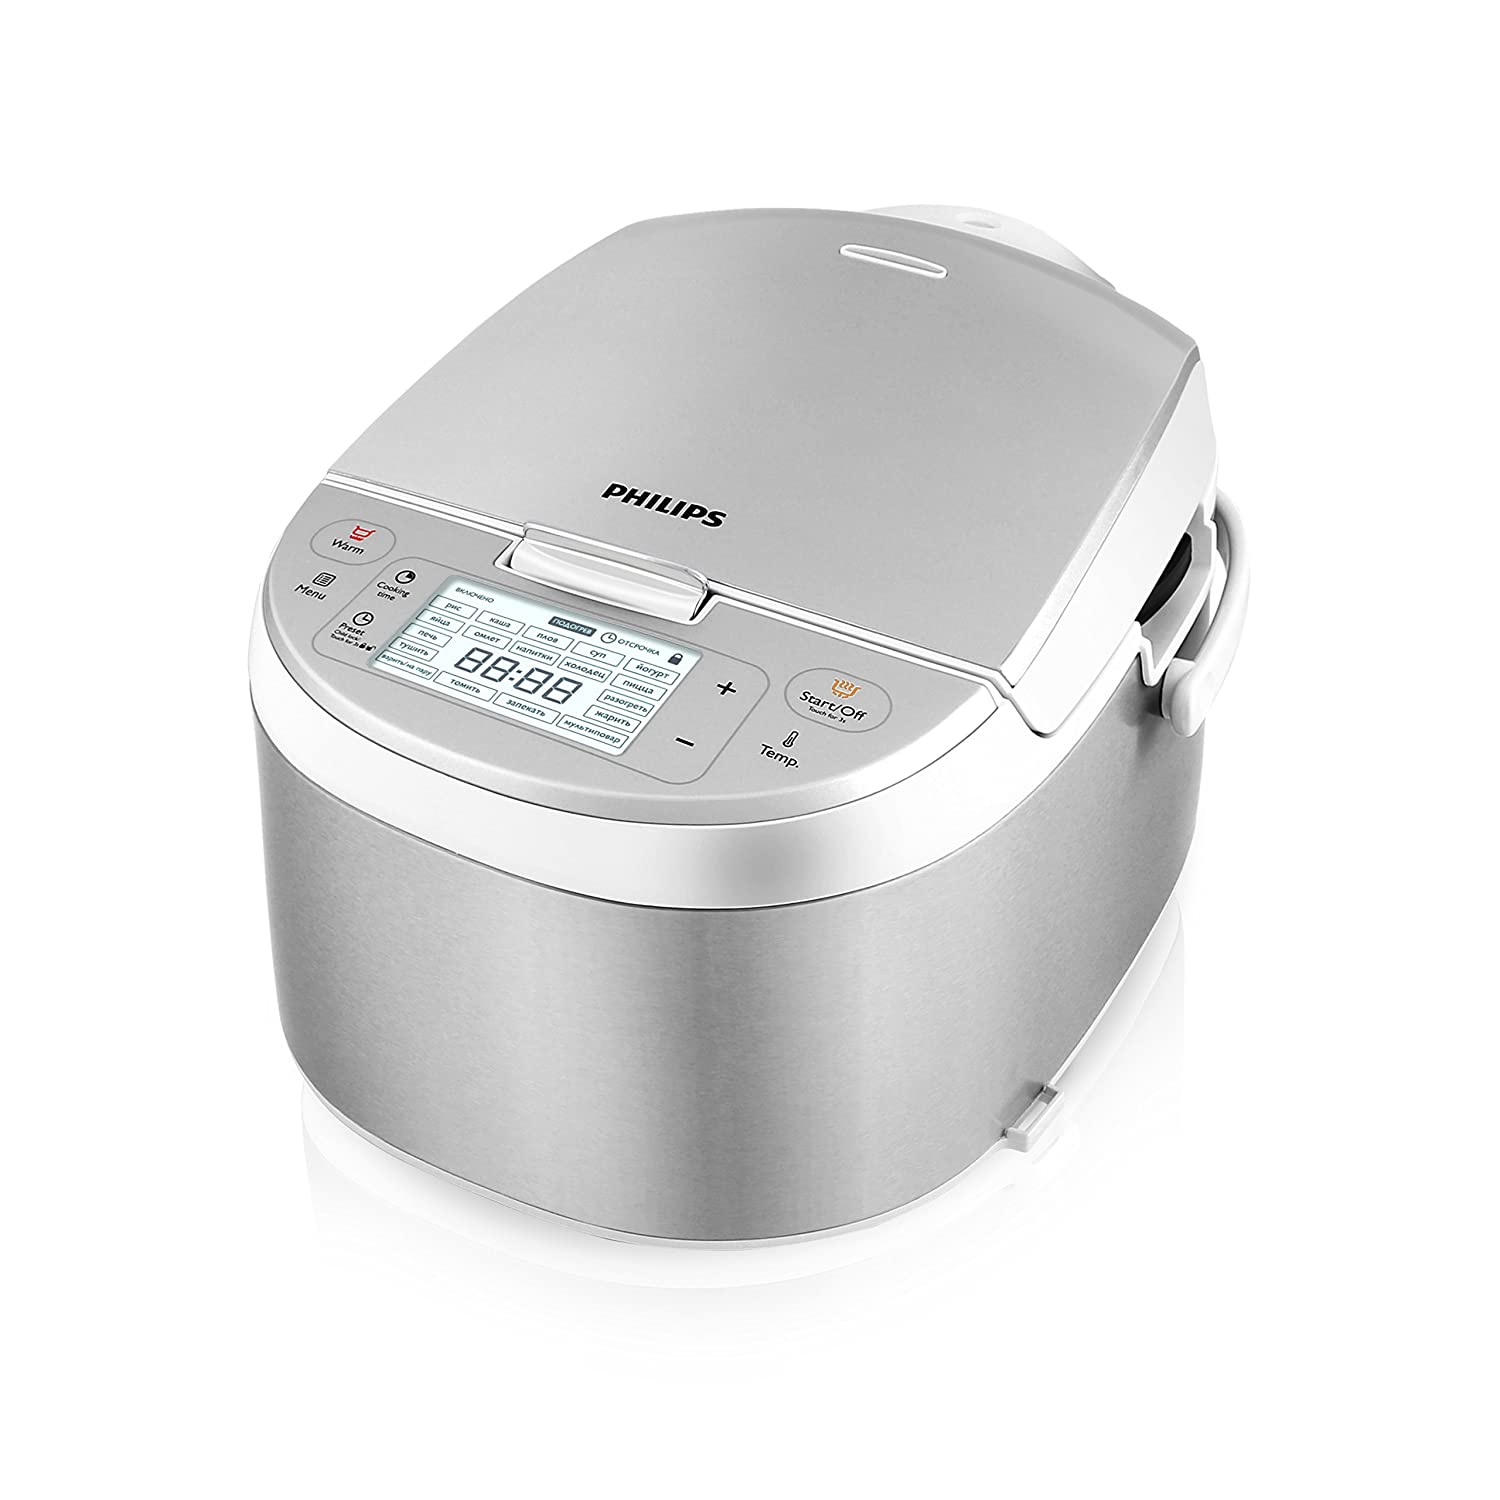 New Philips HD3095/87 Electric Multi-Cooker, Stainless Steel/White